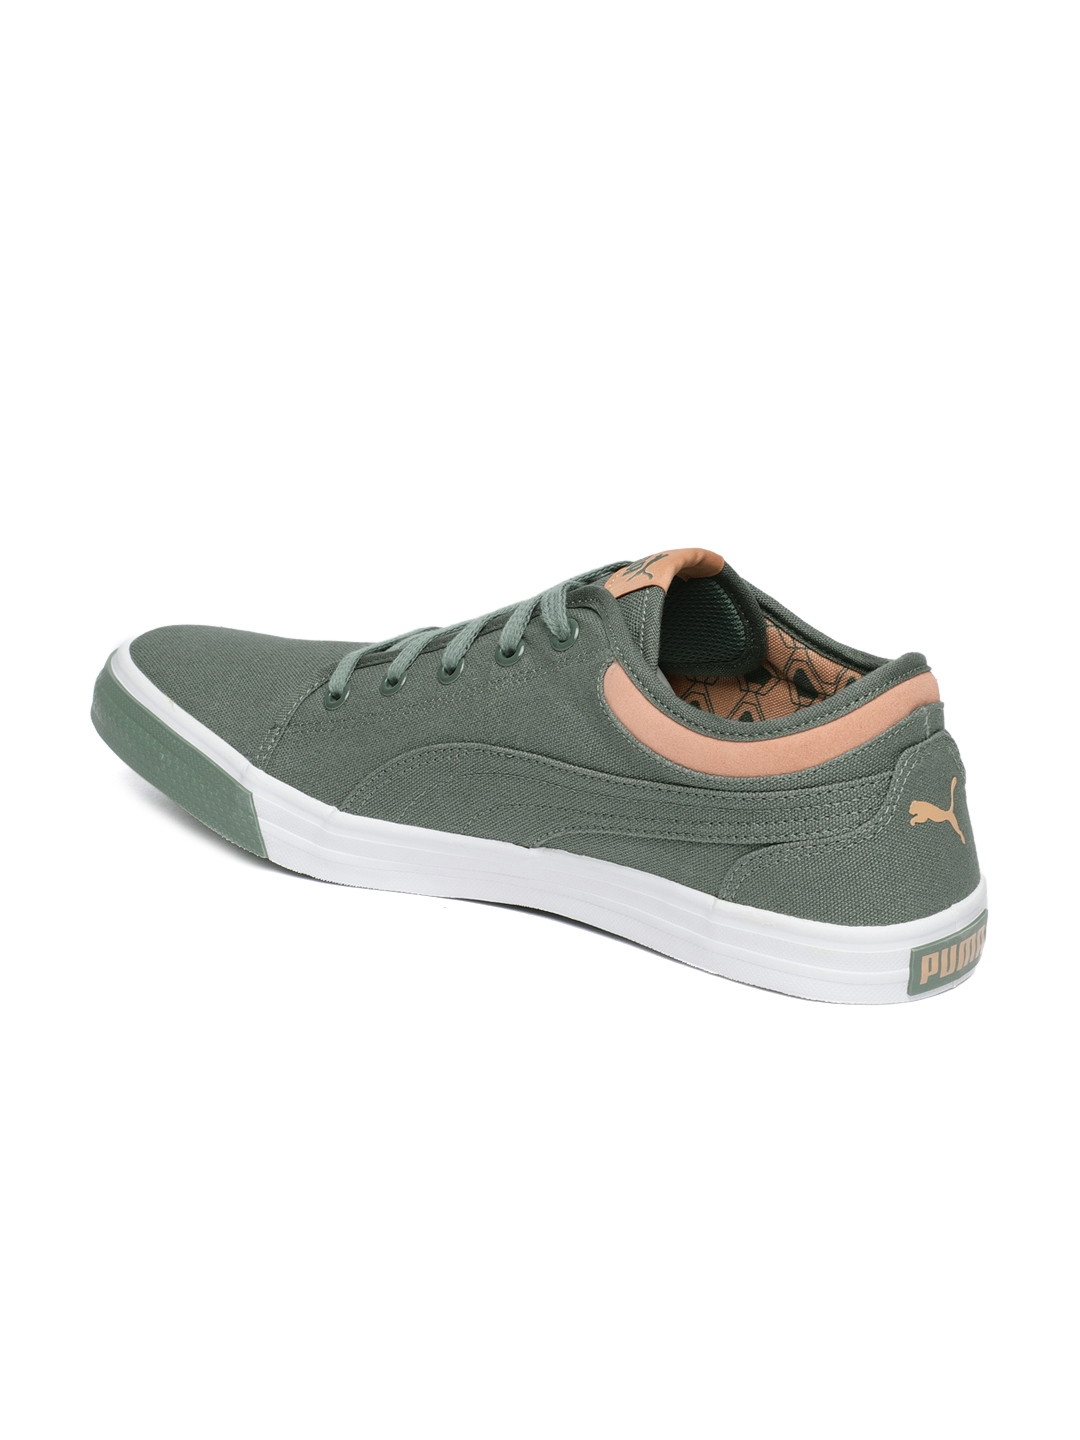 a9e89a262f13 Buy Puma Unisex Olive Green Yale Gum 2 IDP Sneakers - Casual Shoes ...